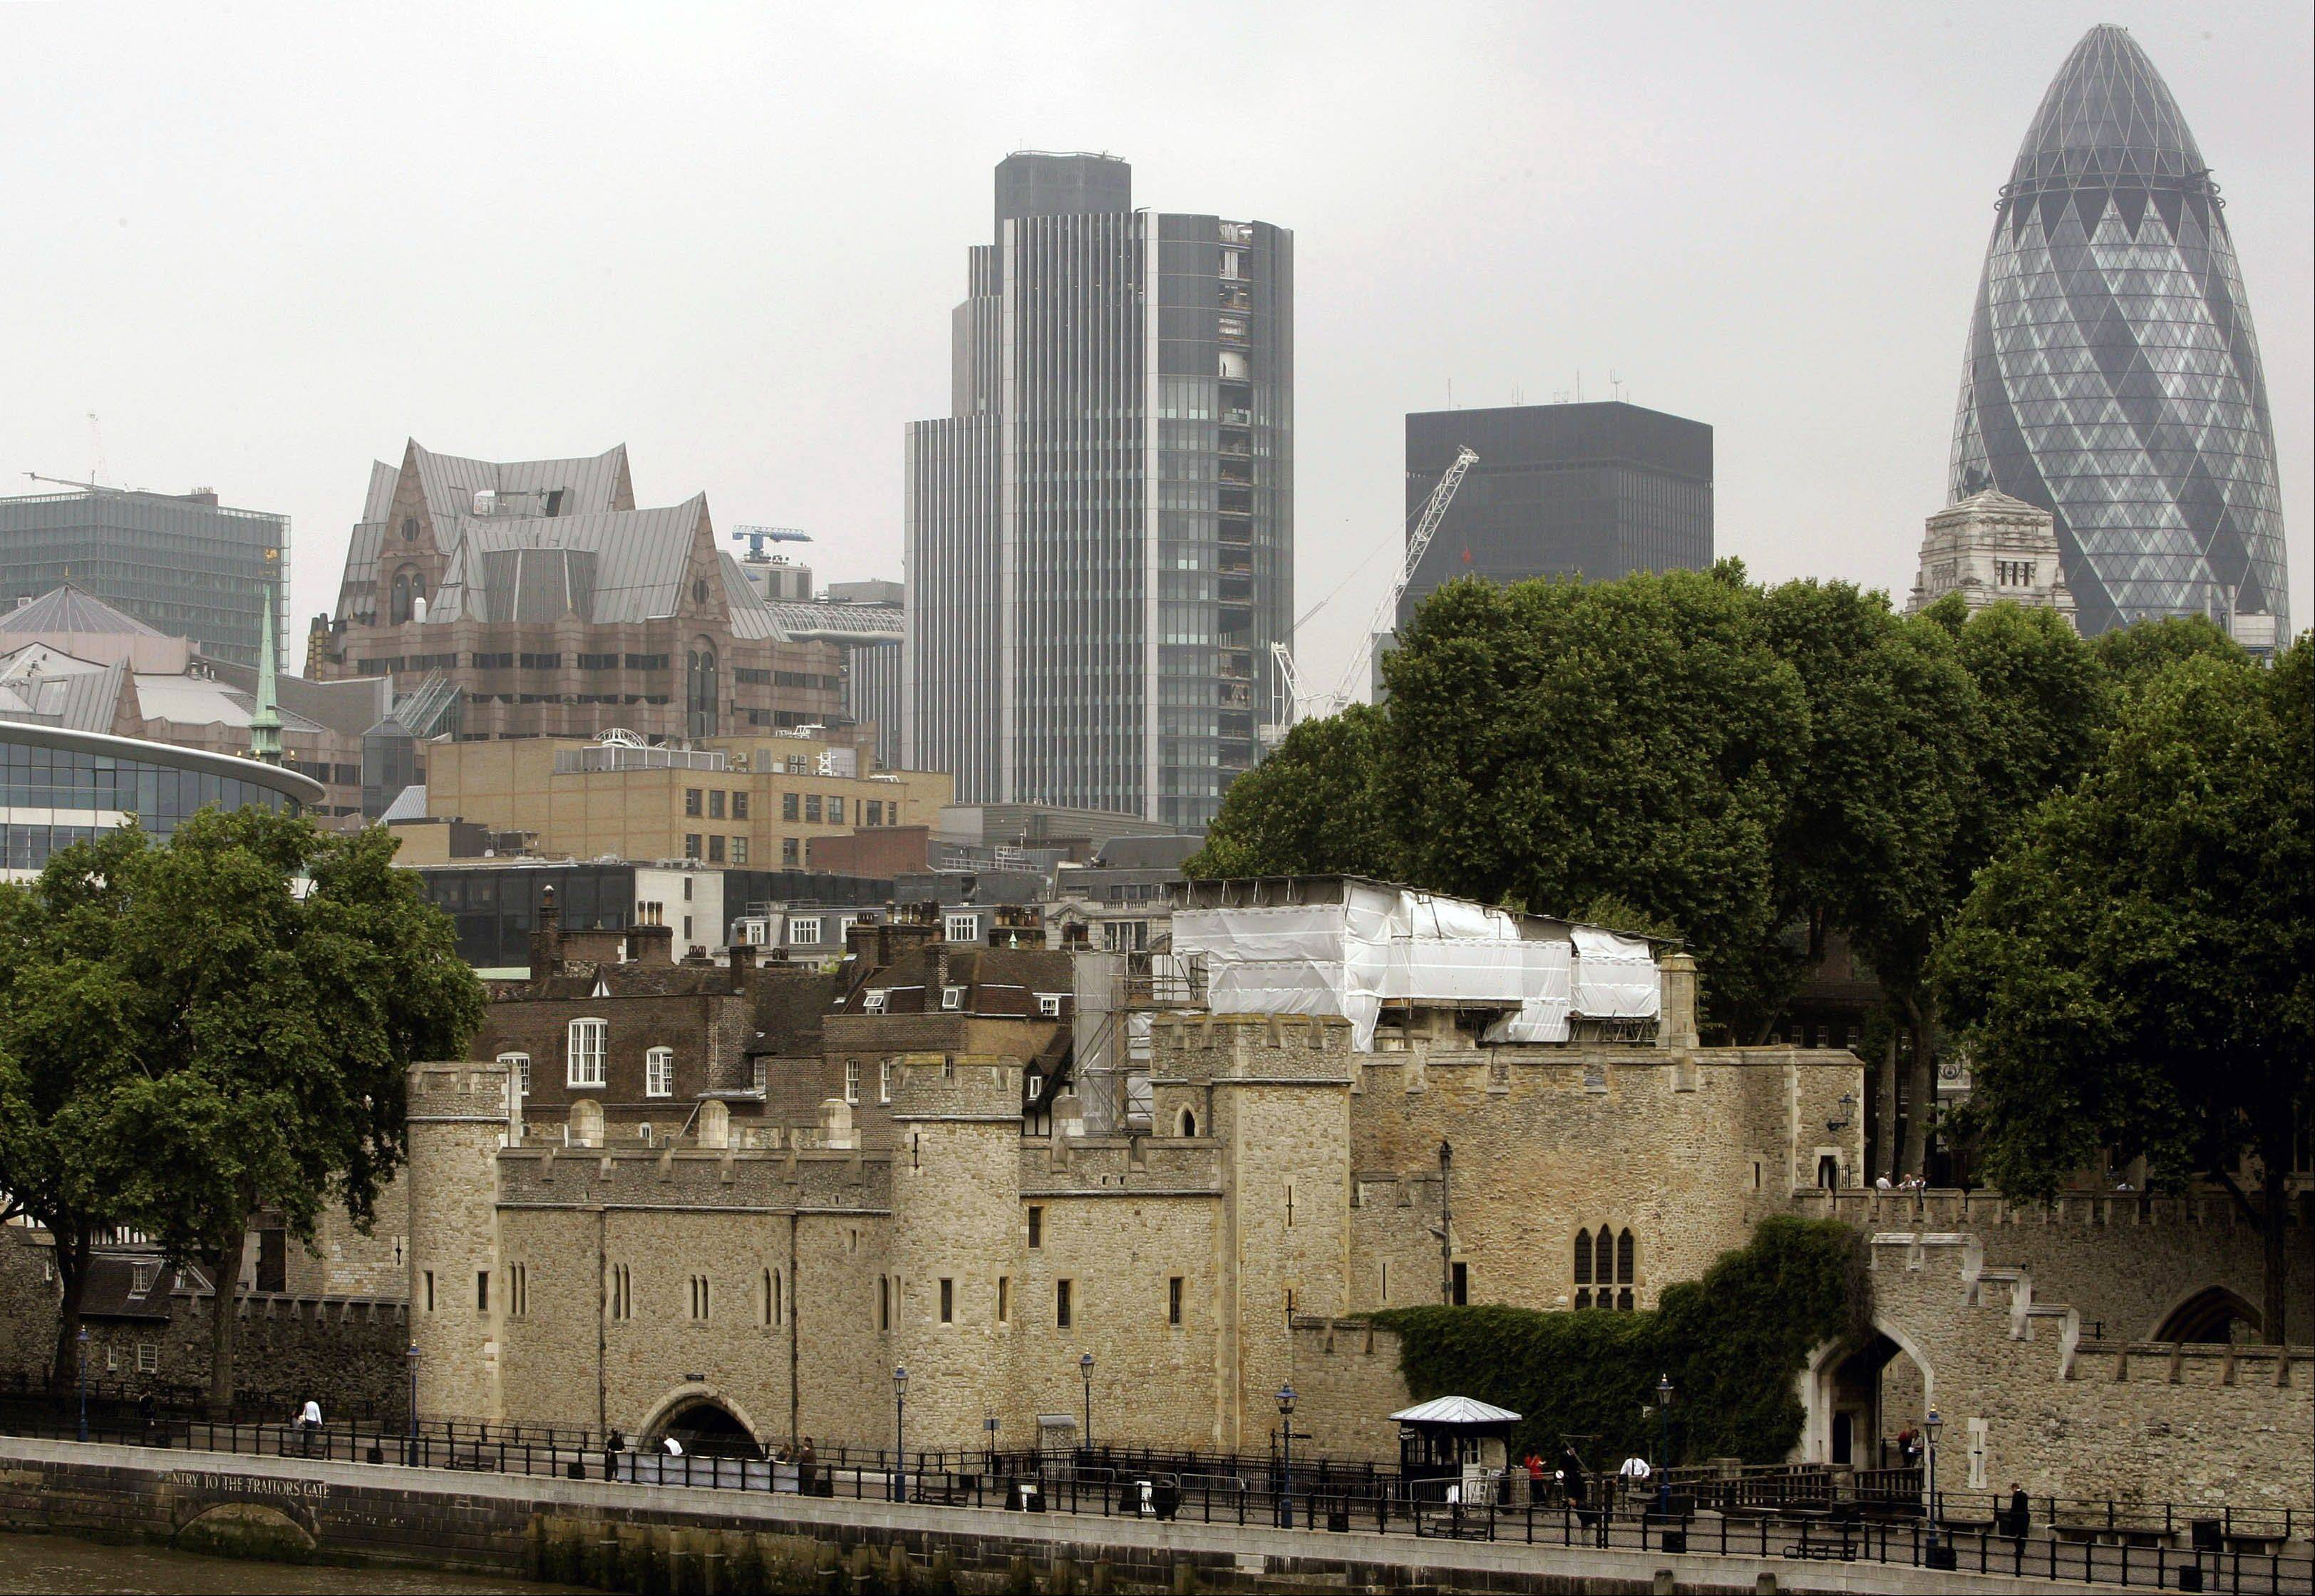 A rare security breach has been reported at the Tower of London, one of the British capital�s most famous landmarks. Authorities say the Crown Jewels and other unique artifacts are safe but that locks had to be changed after an intruder broke in and stole some keys.